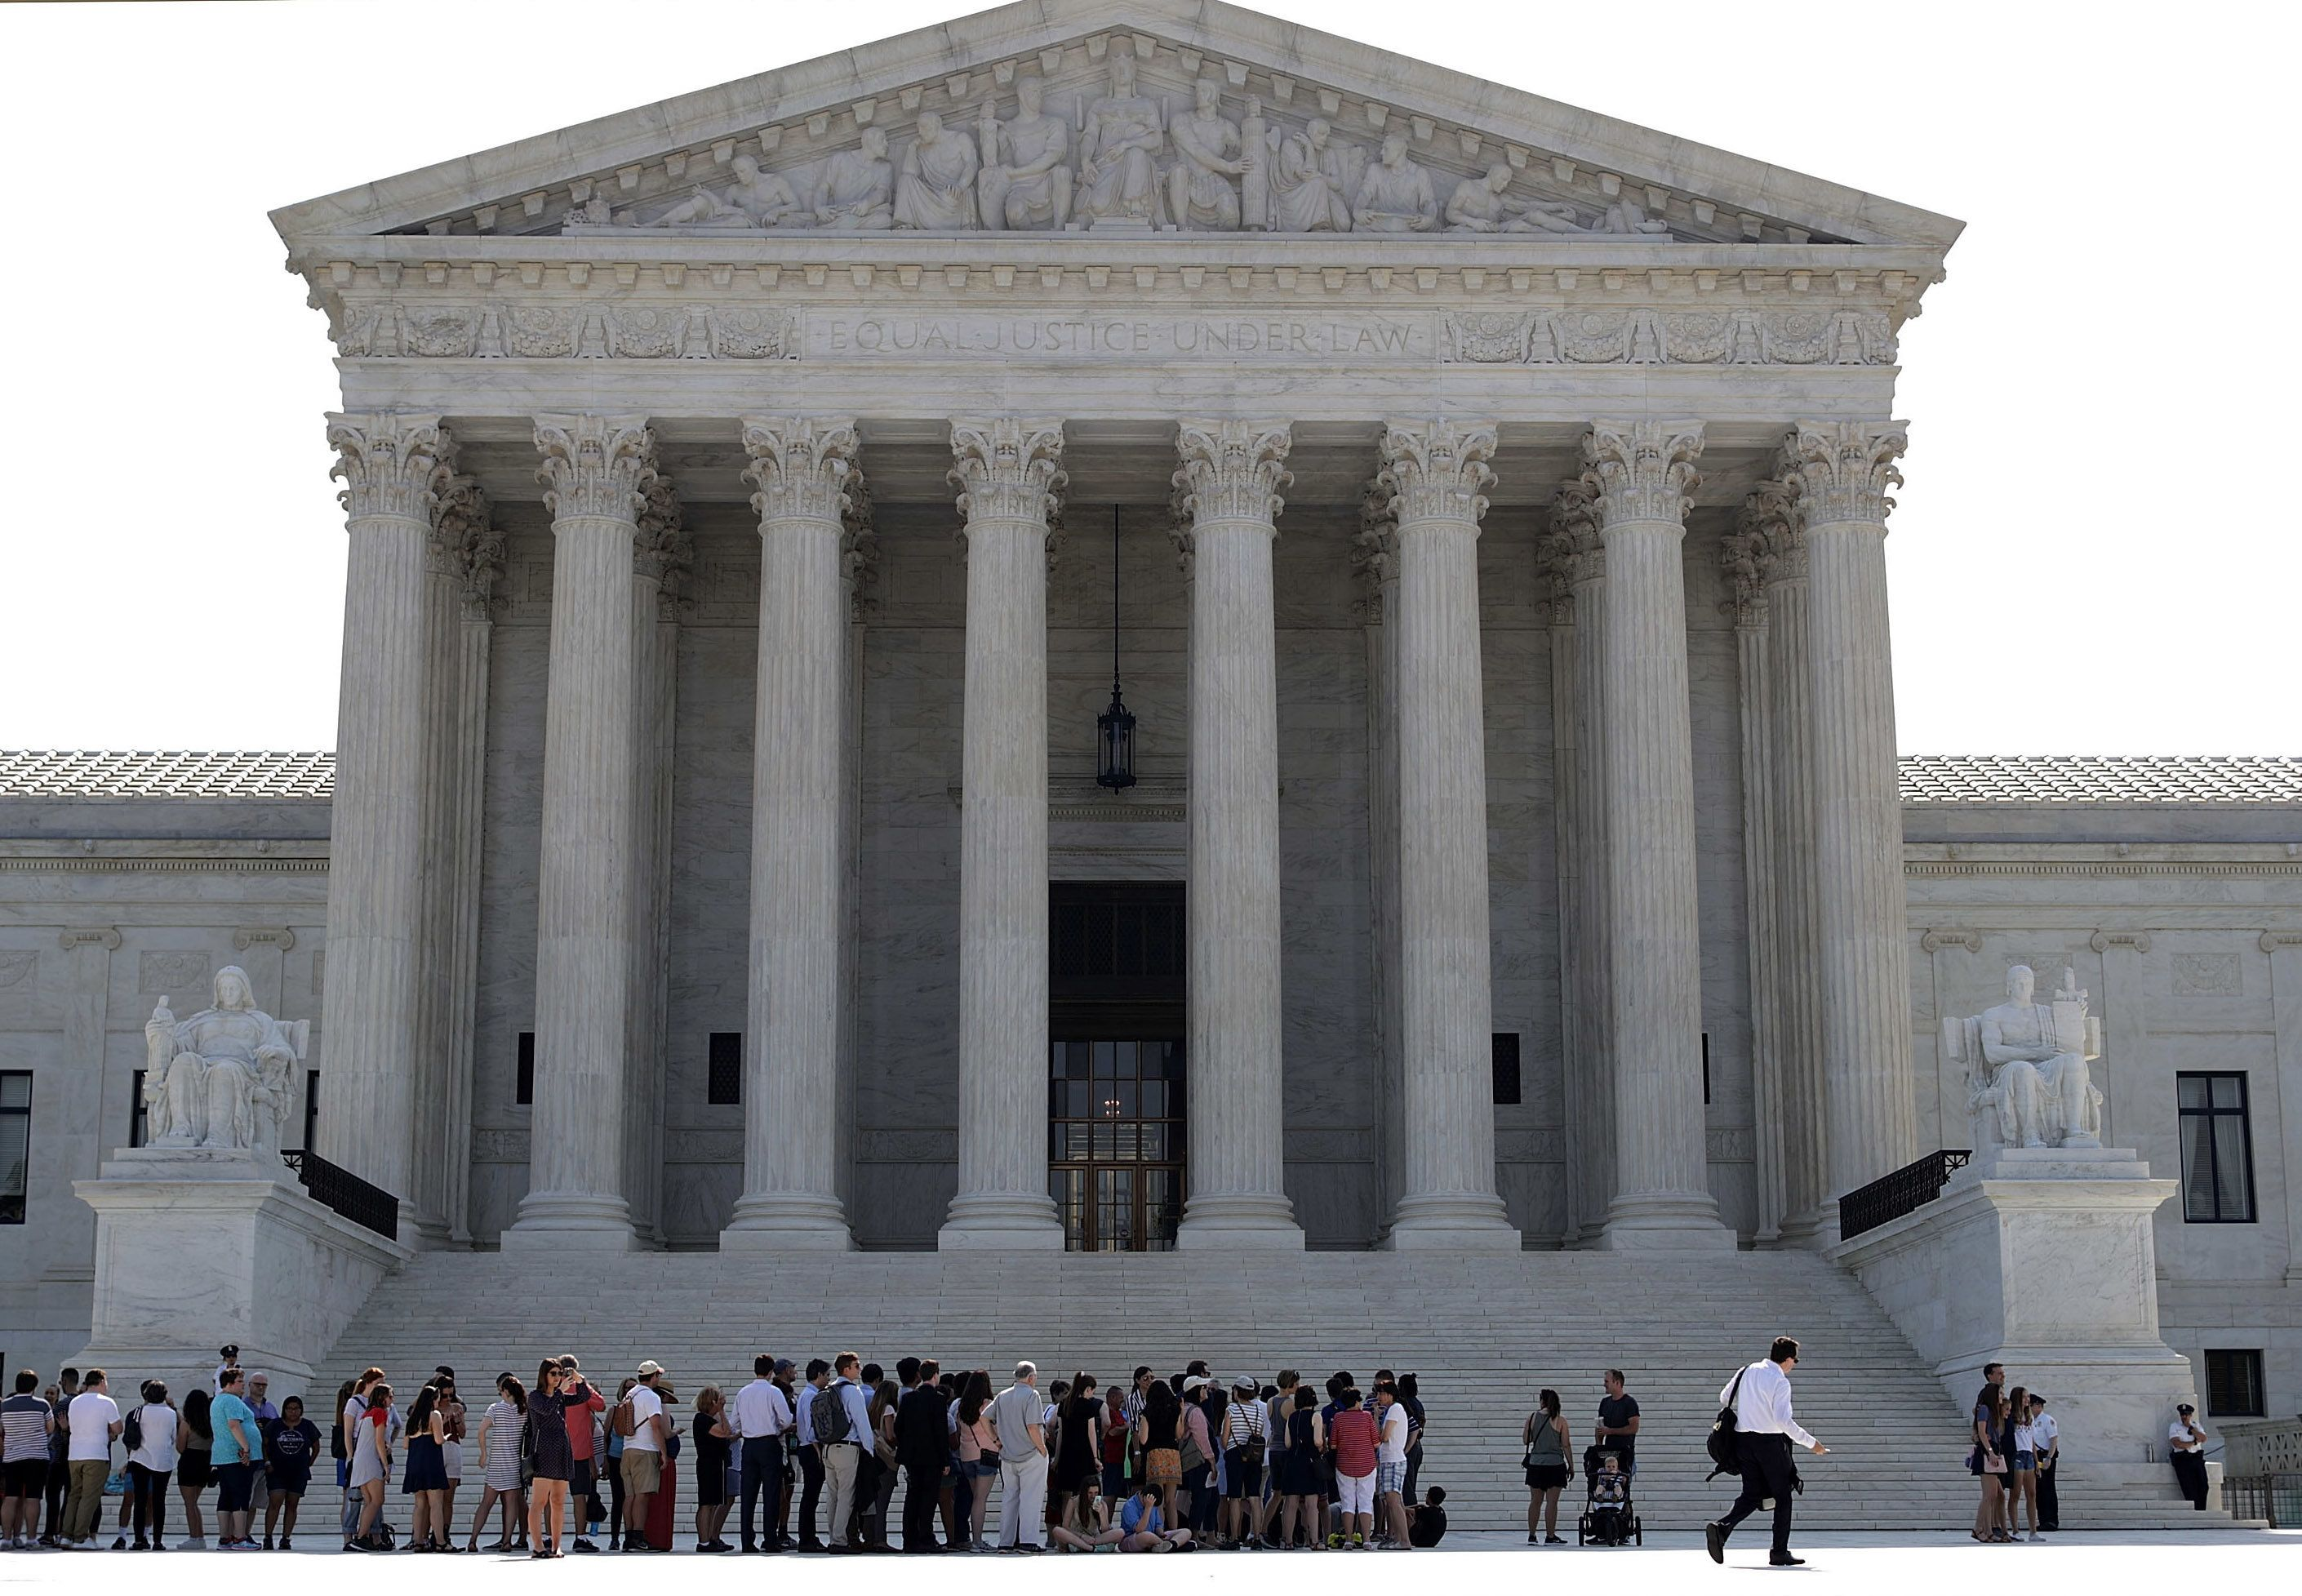 WASHINGTON, DC - JUNE 18:  Visitors line up outside the U.S. Supreme Court plaza before the court handed down decisions June 18, 2018 in Washington, DC. The court handed down opinions in five cases, including decisions about sentencing guidelines, gerrymandering and other topics.  (Photo by Chip Somodevilla/Getty Images)